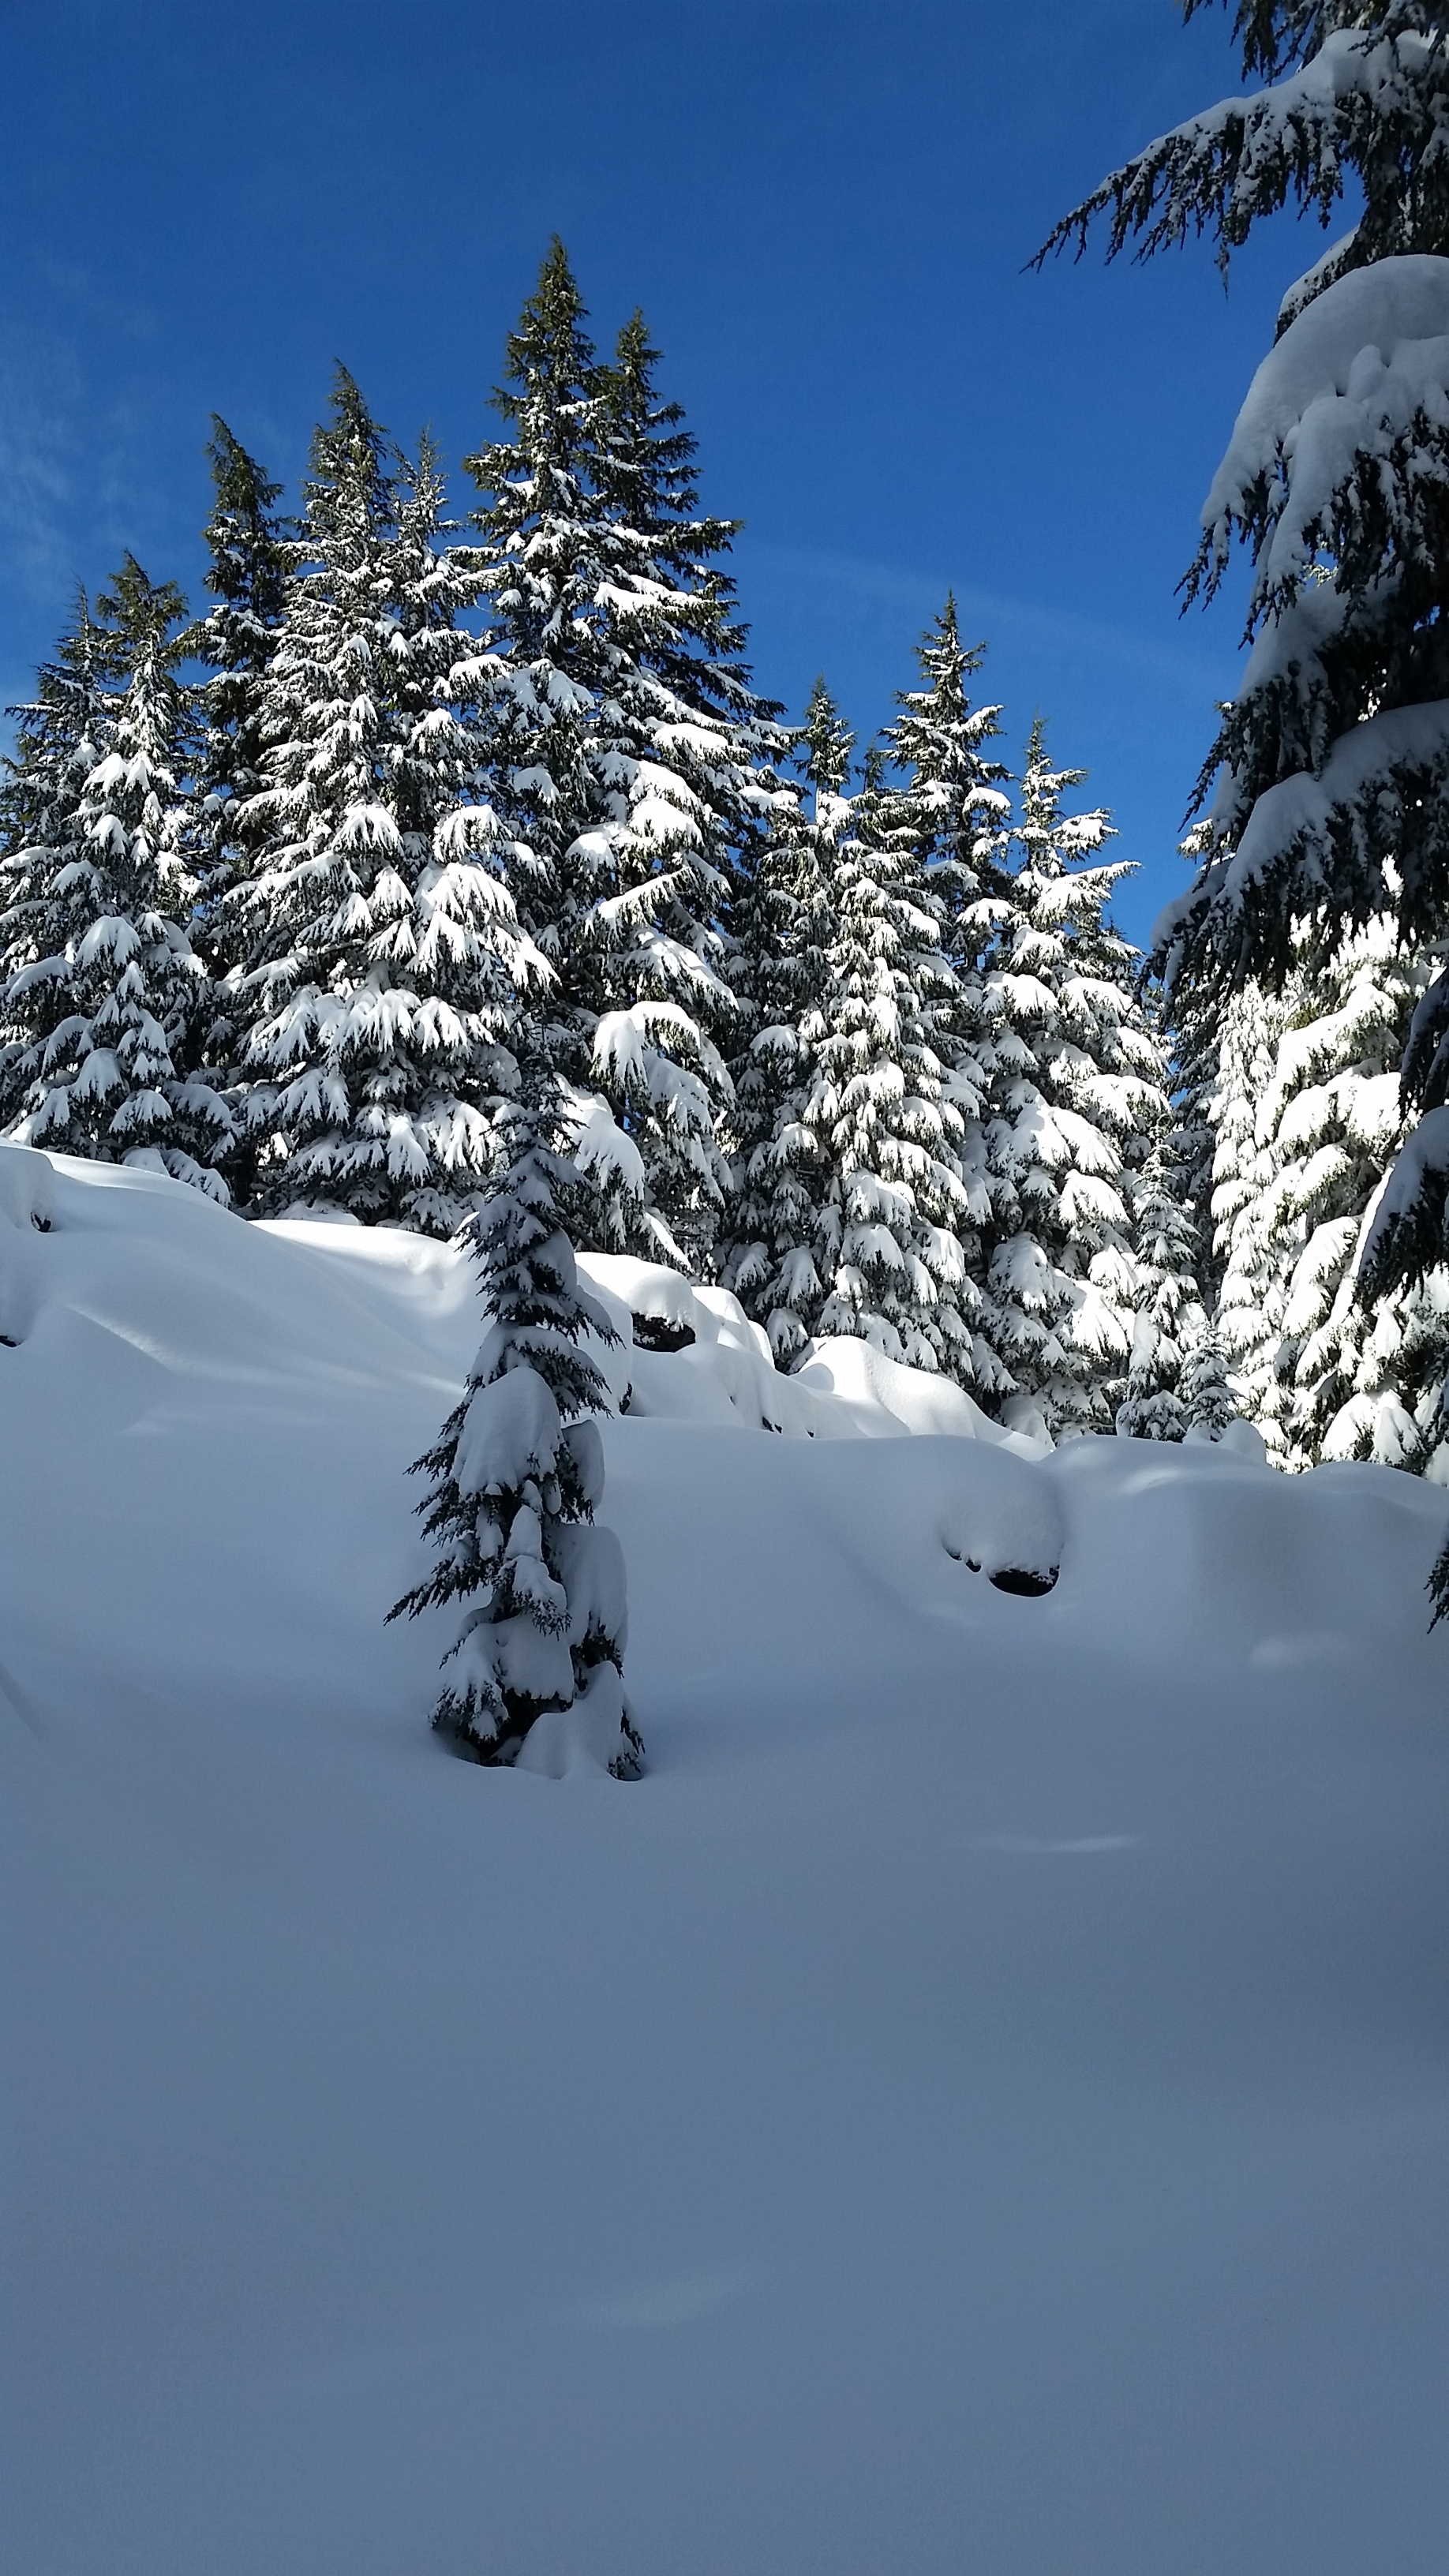 Snowy forest at Mt. Bachelor